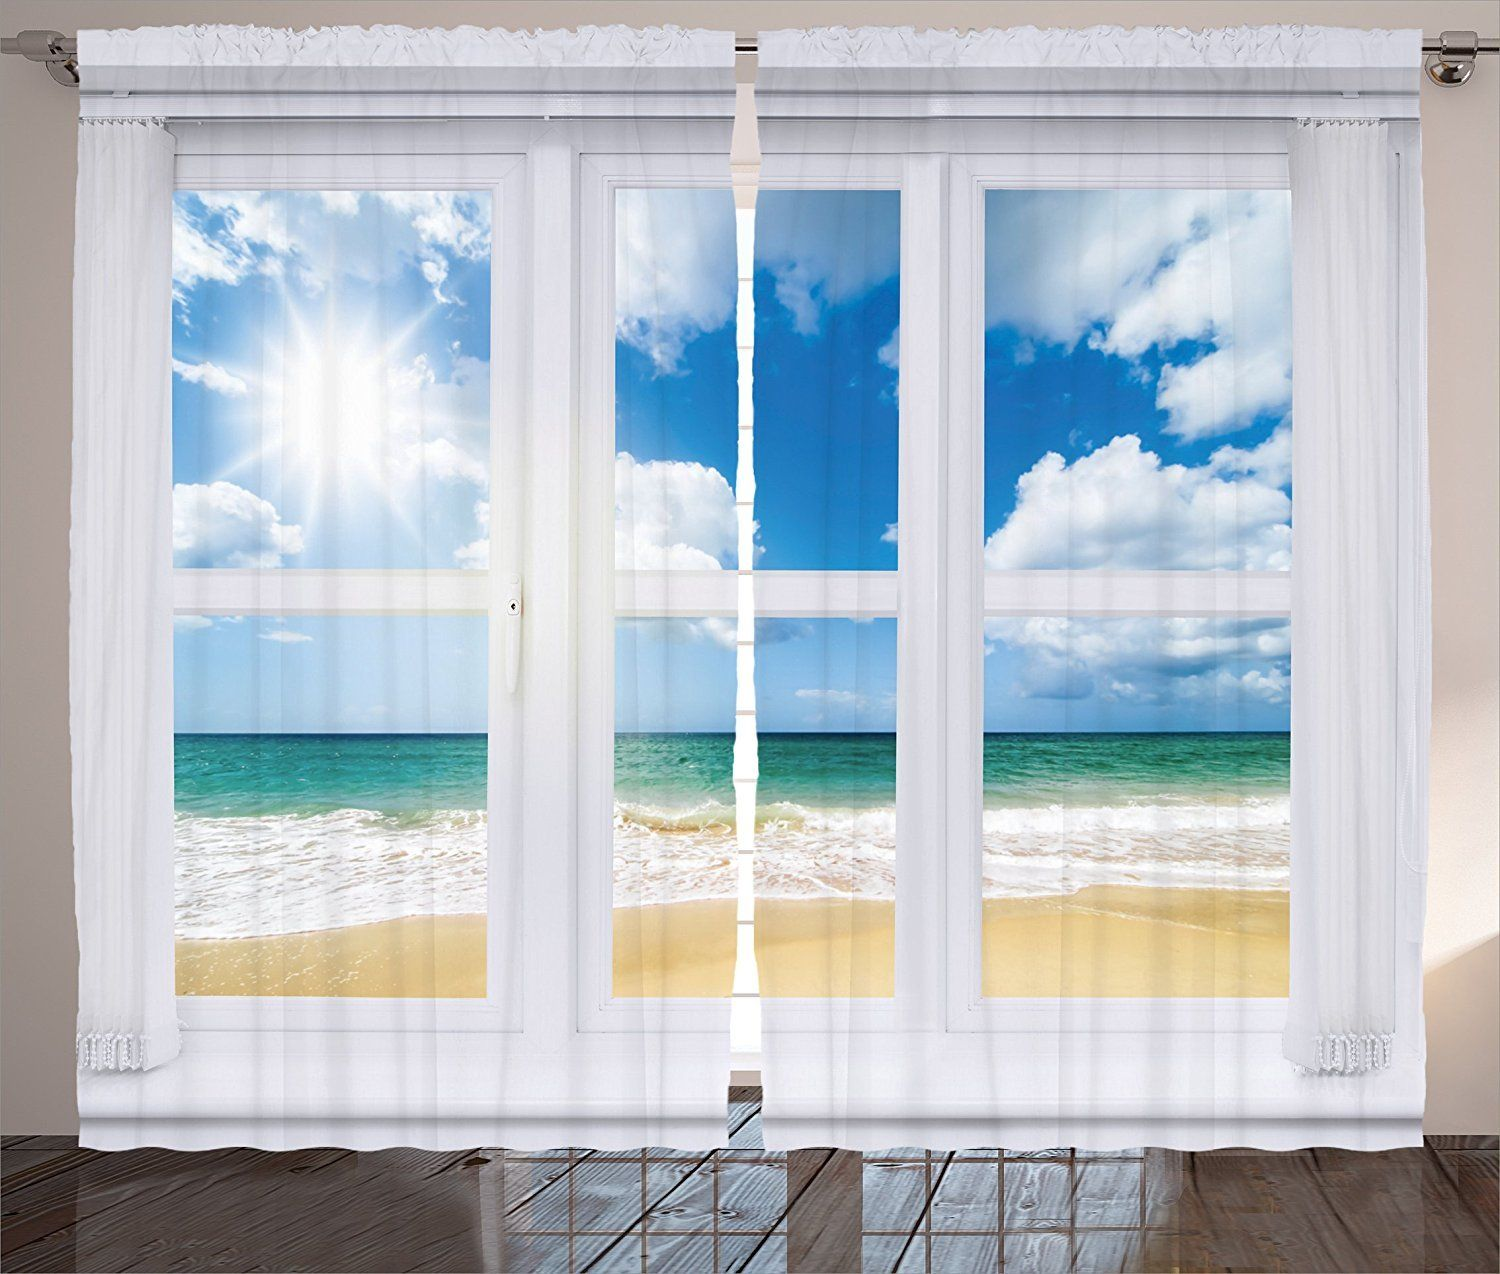 House Decor Curtains Beach House Window Overlooking An Ocean View Bright Sunshine Sandy Cloudscape Living Room Be Beach House Decor Beach Curtains House Window